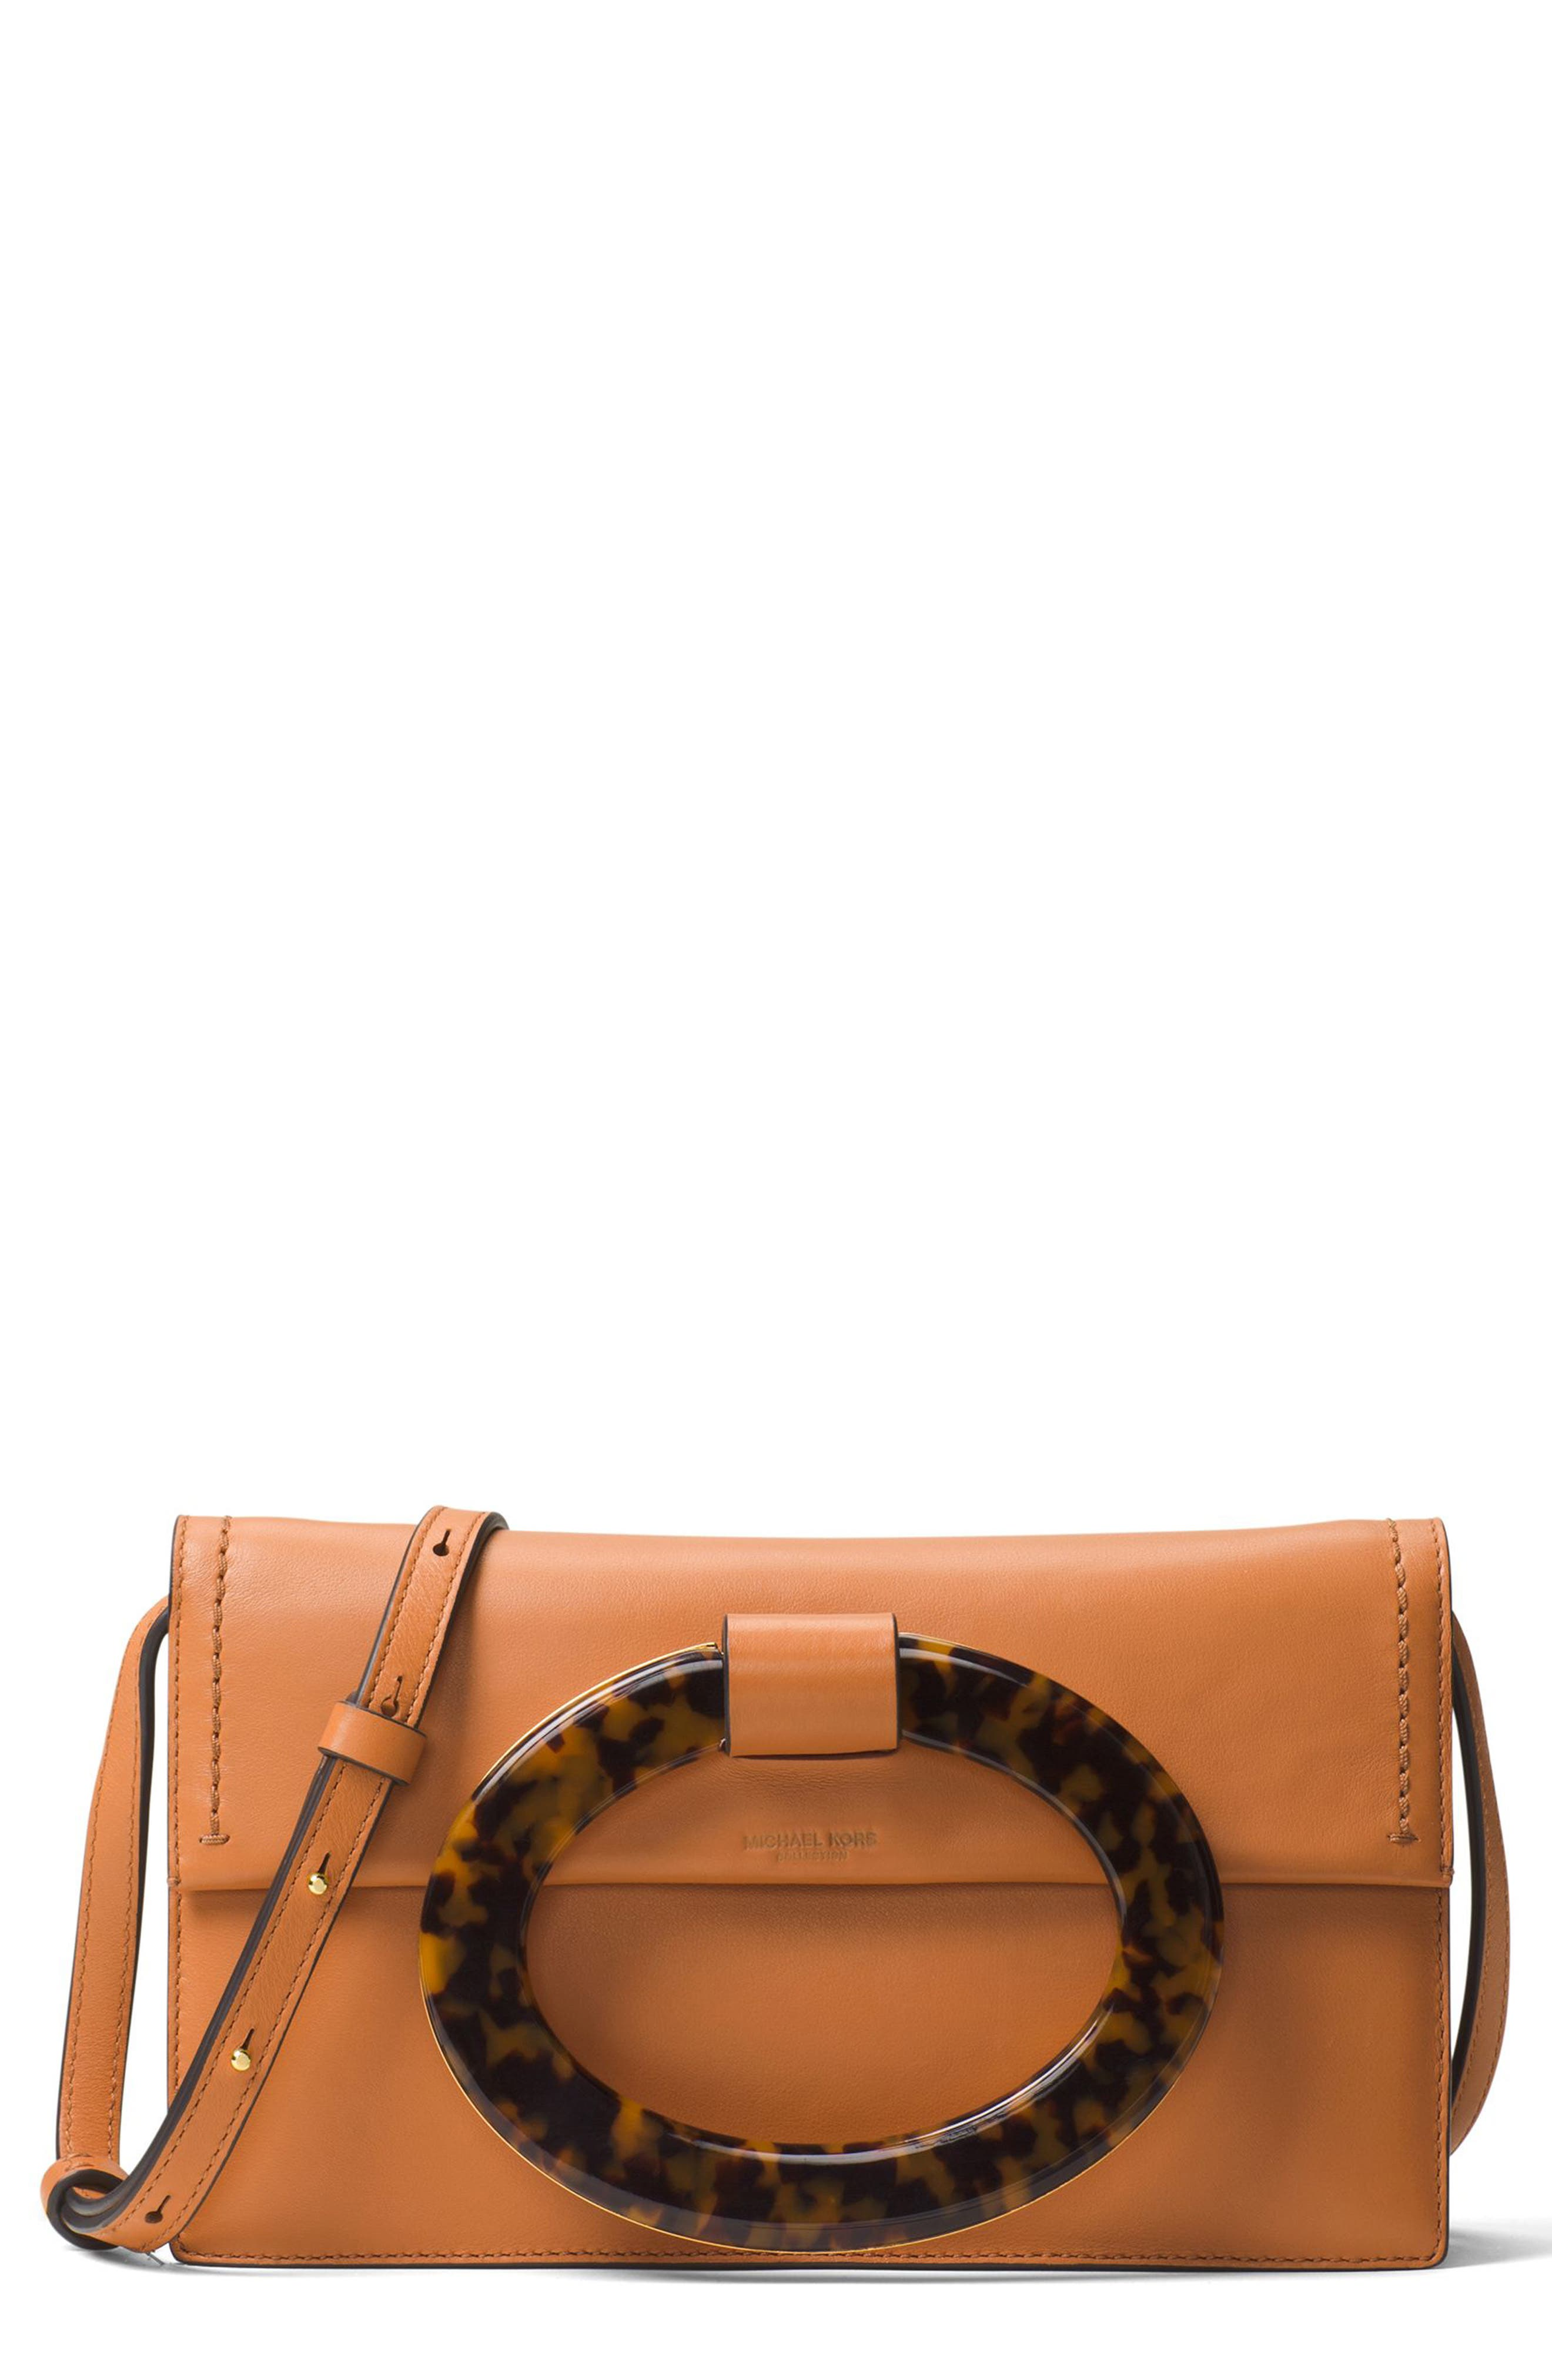 Main Image - Michael Kors Baxter Calfskin Leather Convertible Clutch